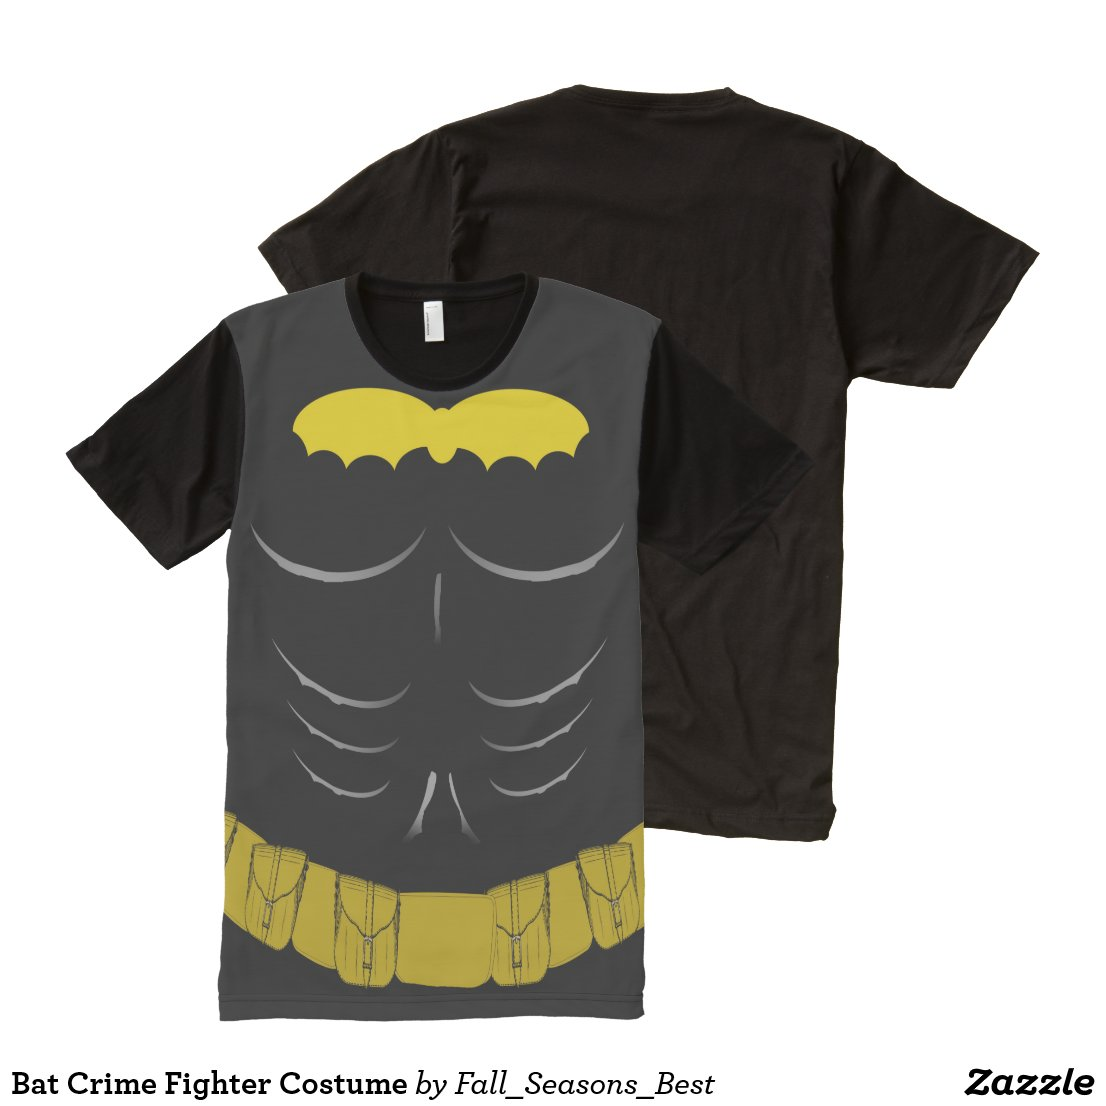 Bat Crime Fighter Costume All-Over-Print T-Shirt